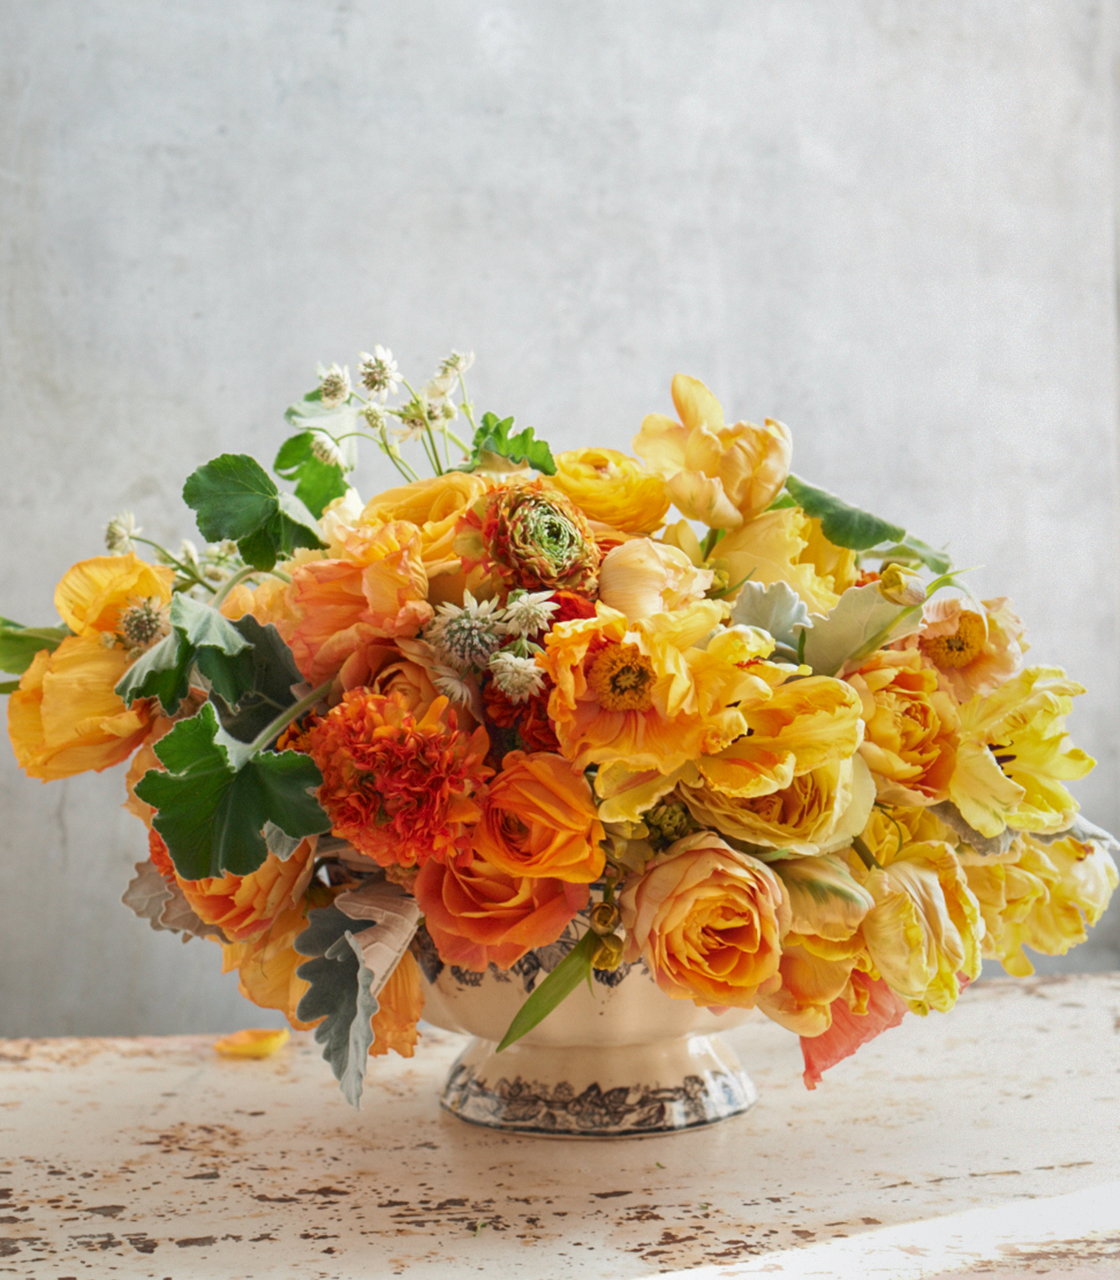 golden lilies roses ranunculus and poppies centerpiece